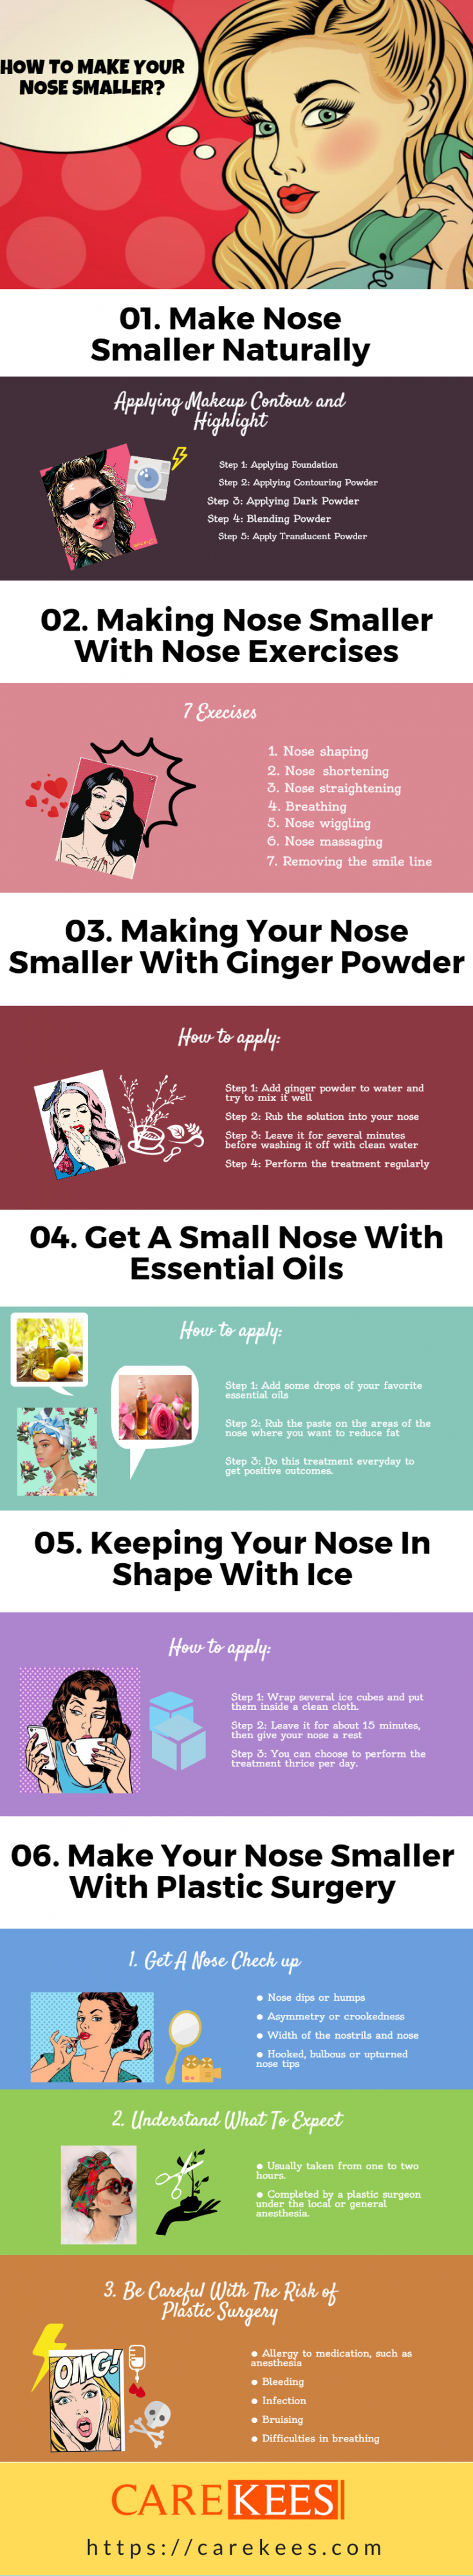 how to make your nose smaller 2